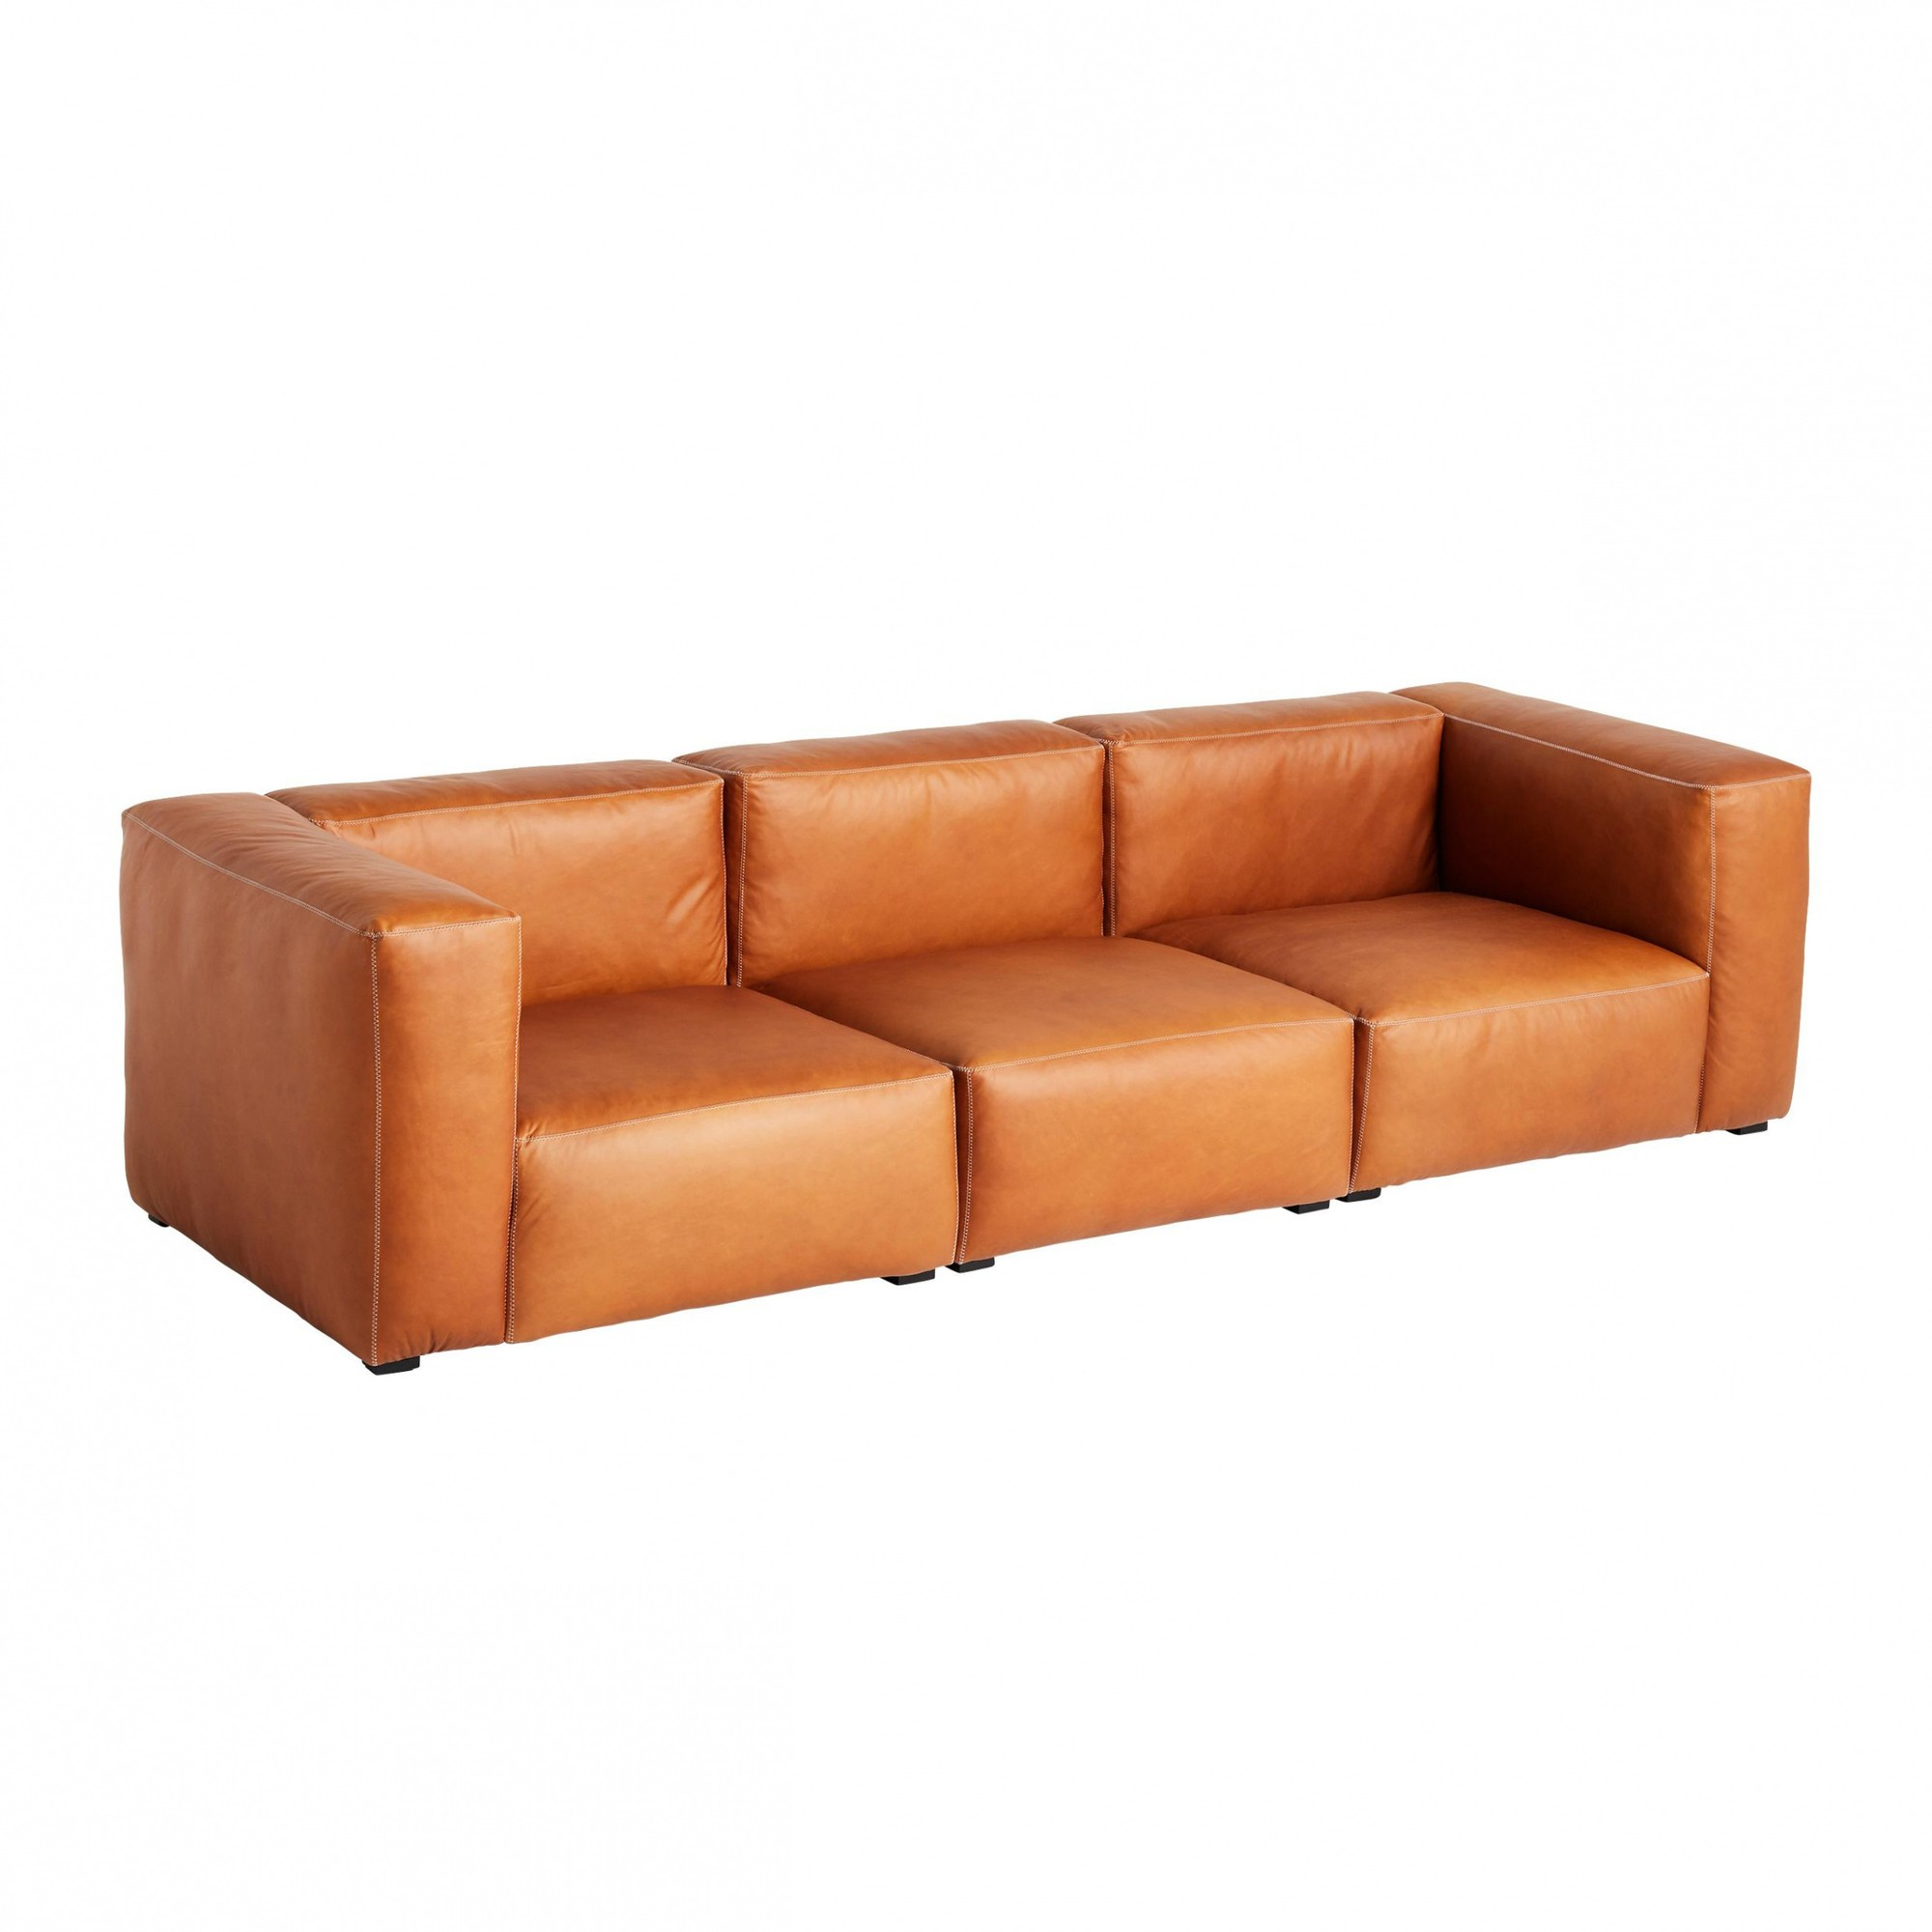 Hay Mags Soft 3 Seater Leather Sofa 268 5x95 5cm